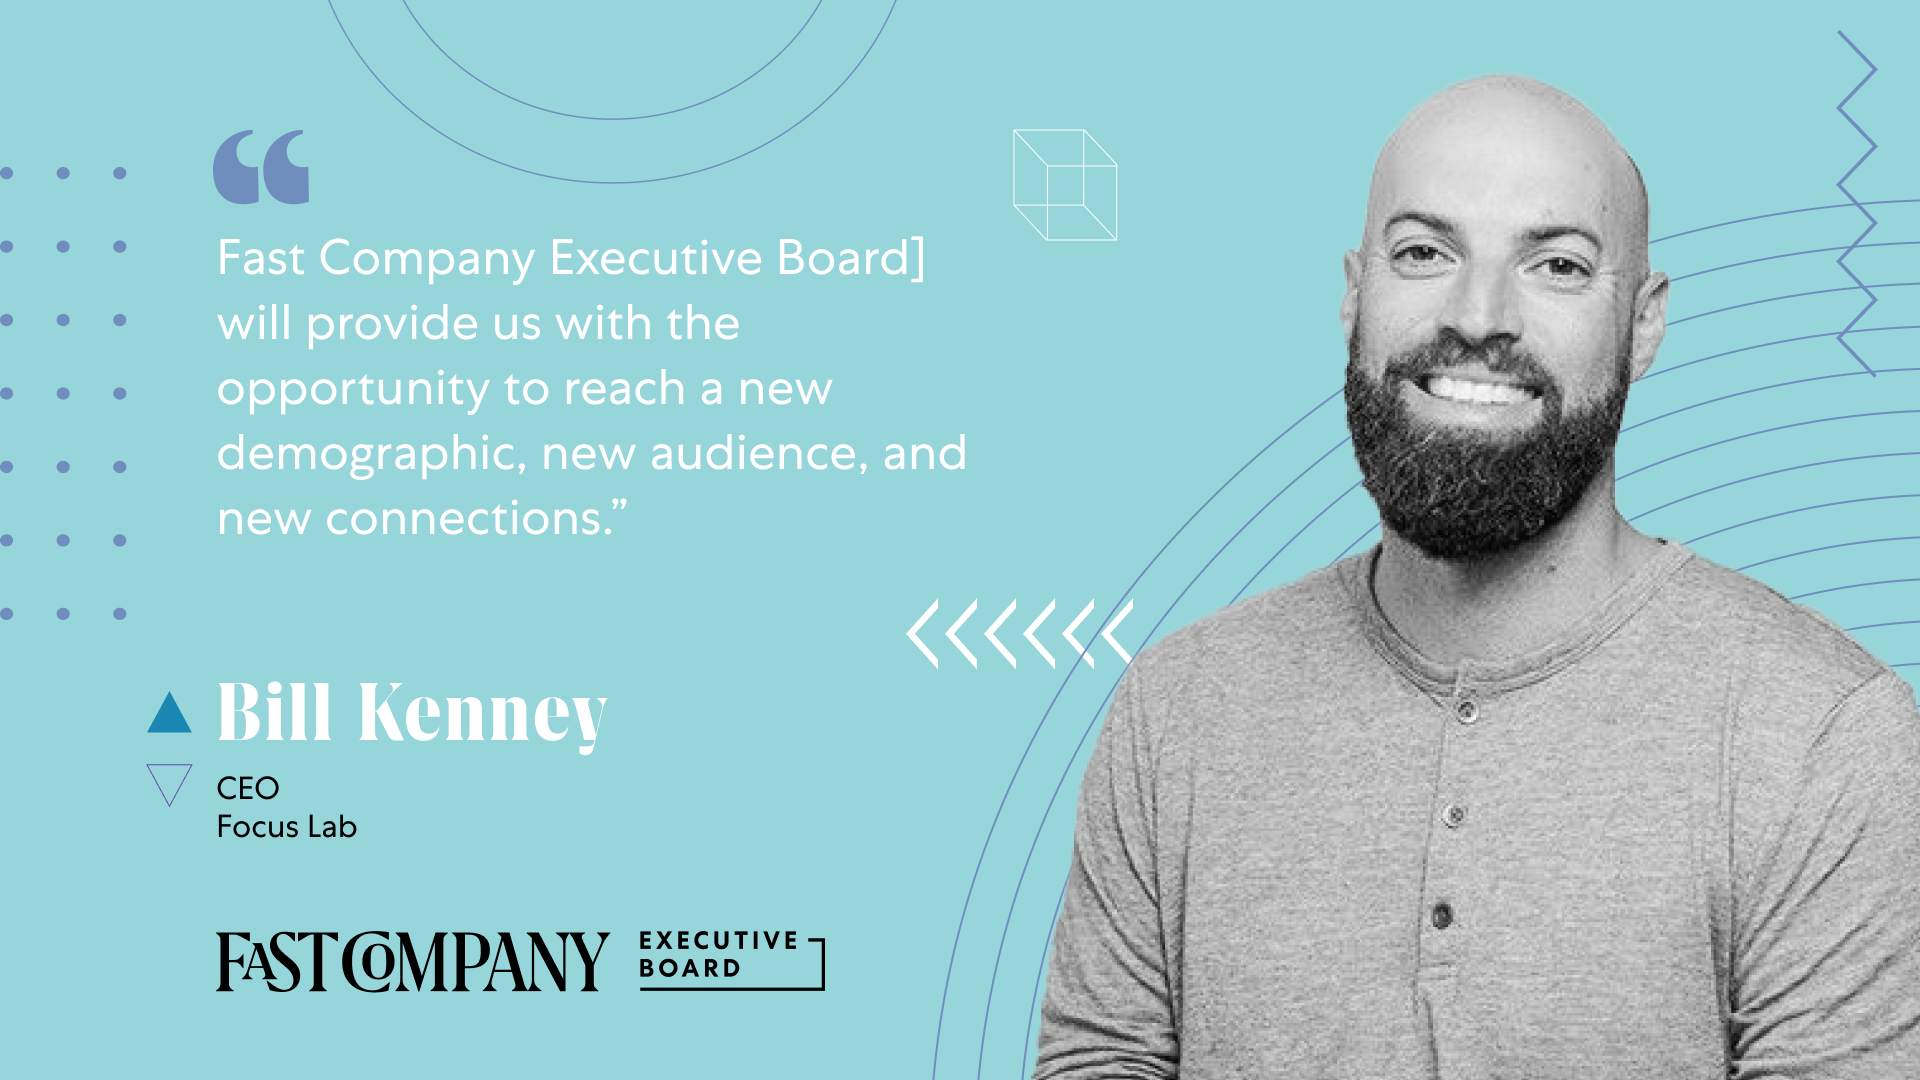 For Bill Kenney, Fast Company Executive Board Provides Access to a New Demographic